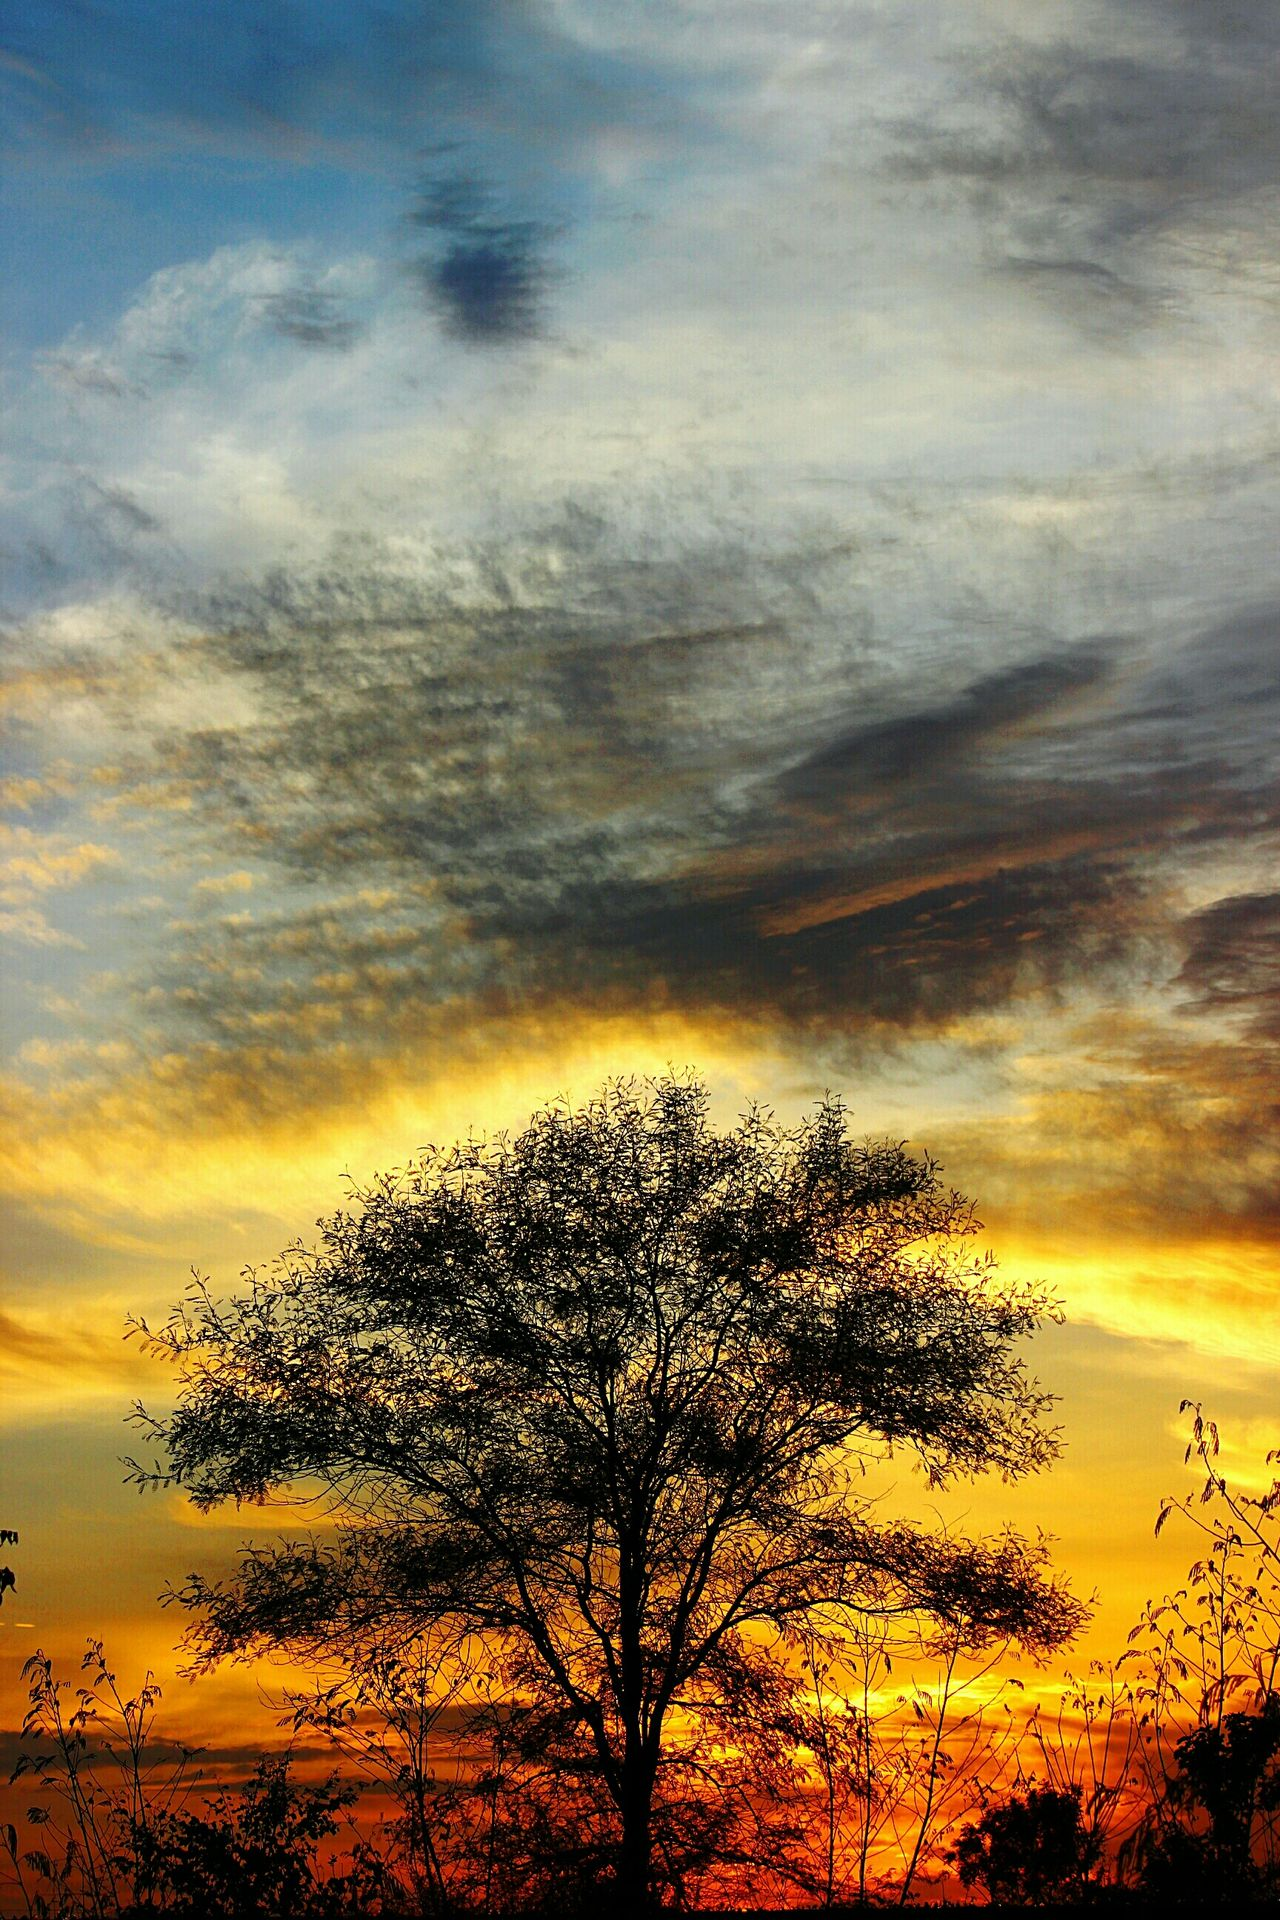 """""""because in the end, we are all dreamers in an endless universe""""Evening Glow Summer Views The Great Outdoors - 2015 EyeEm Awards Evening Sky Sky_collection Fiery Sunset Sky And Clouds EyeEm Nature Lover EyeEm Best Shots - Landscape EyeEm Best Shots - Nature"""